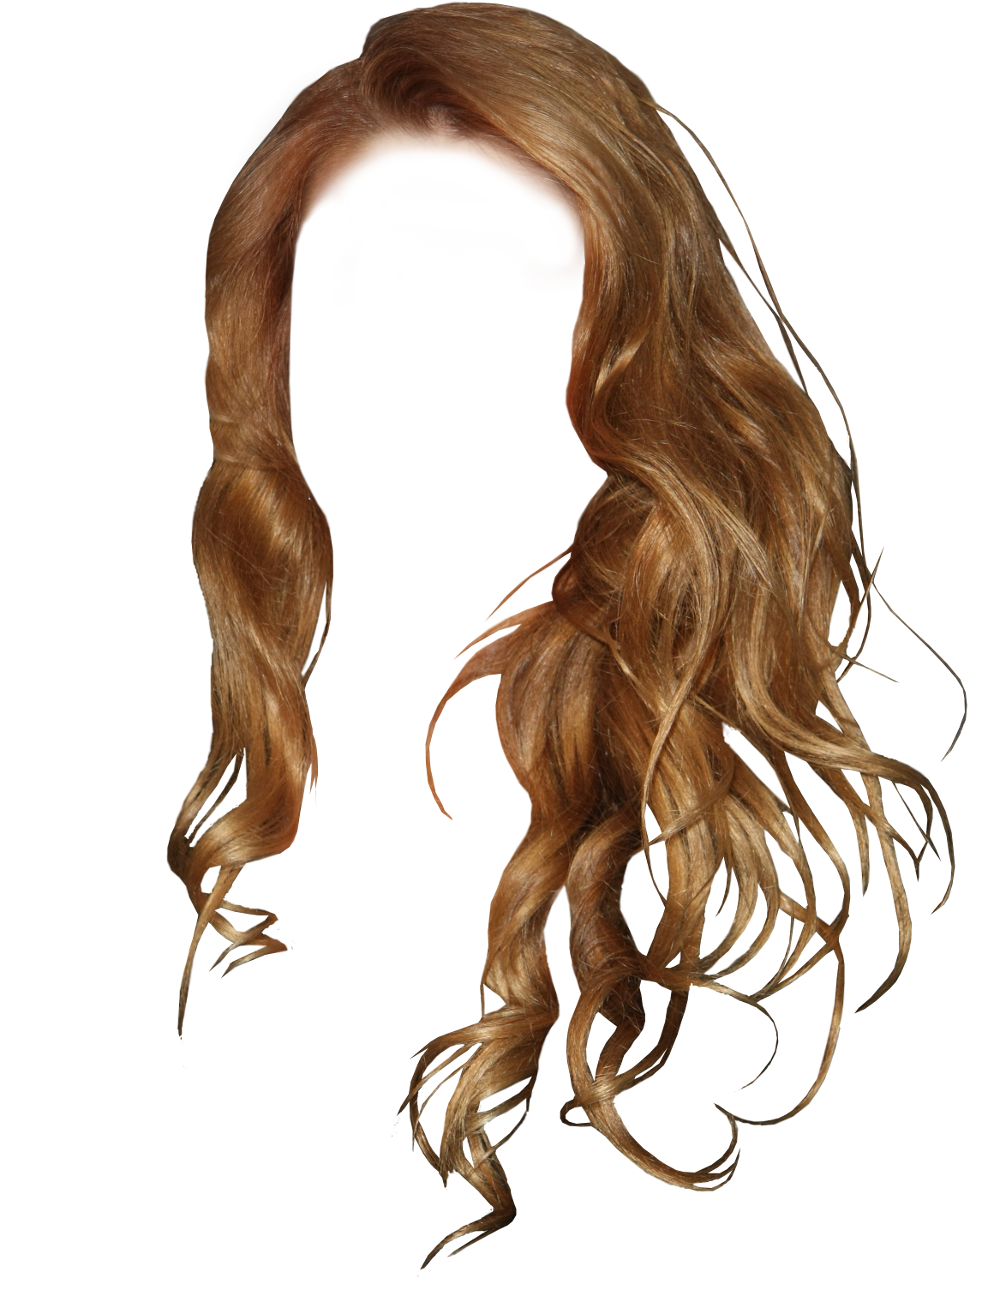 Hairstyles Download PNG - Hairstyles PNG